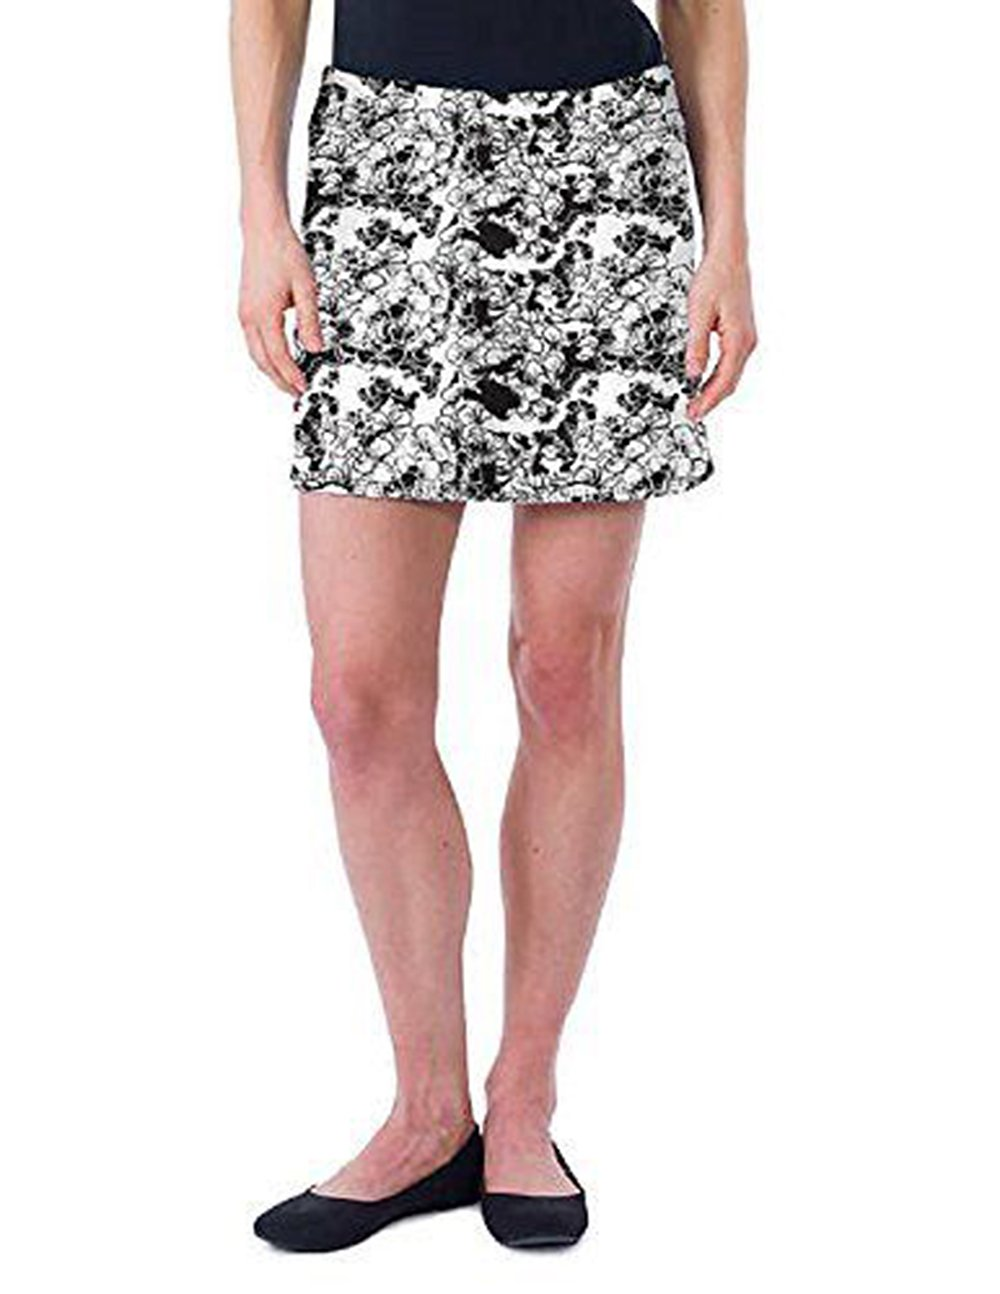 Tranquility Hydrangea Travel Casual Athletic Skirt. Large. Black/White